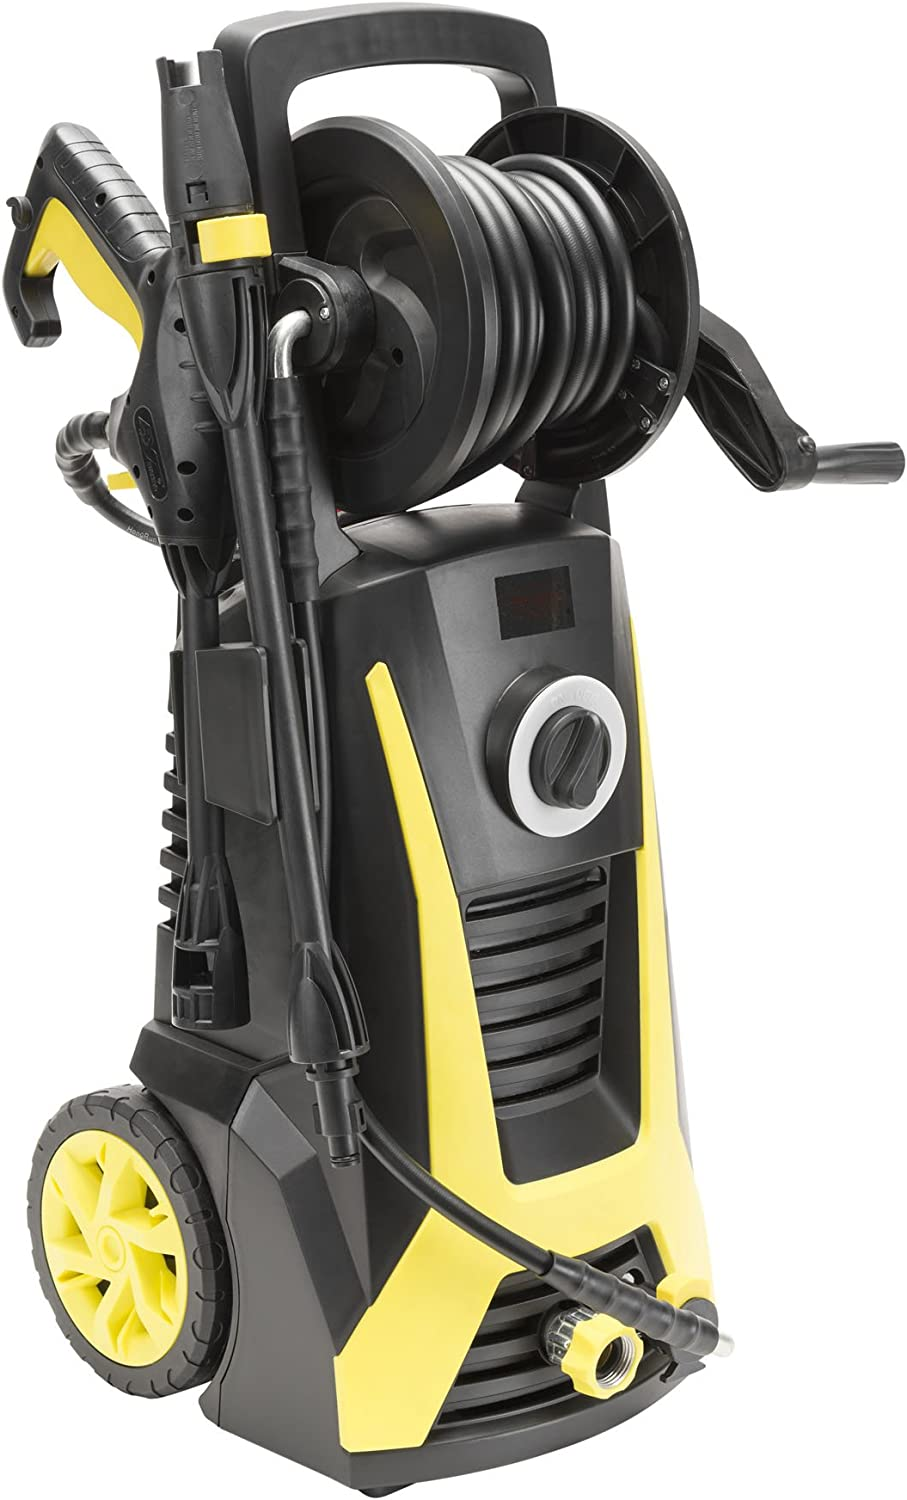 Realm 2000 PSI 1.60 GPM 13 Amp Electric Pressure Washer with Hose Reel and Built in Detergent Tank